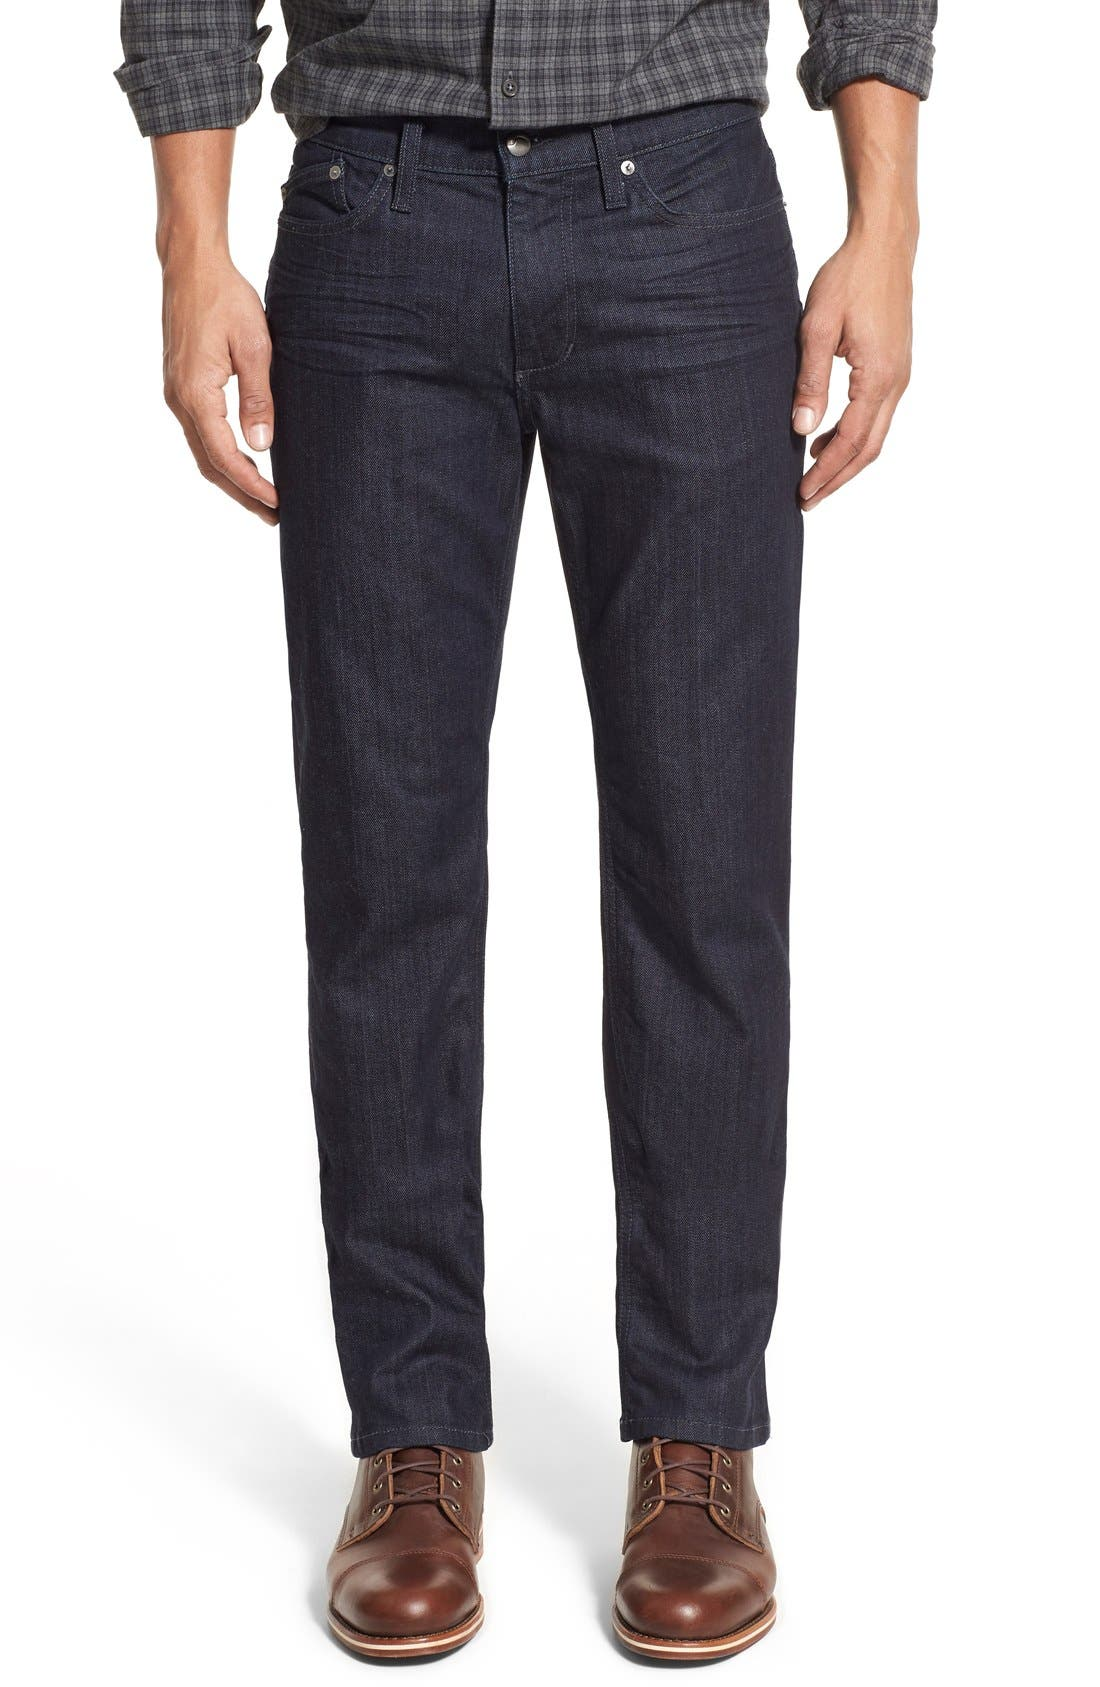 Brixton Slim Straight Fit Jeans,                         Main,                         color, King